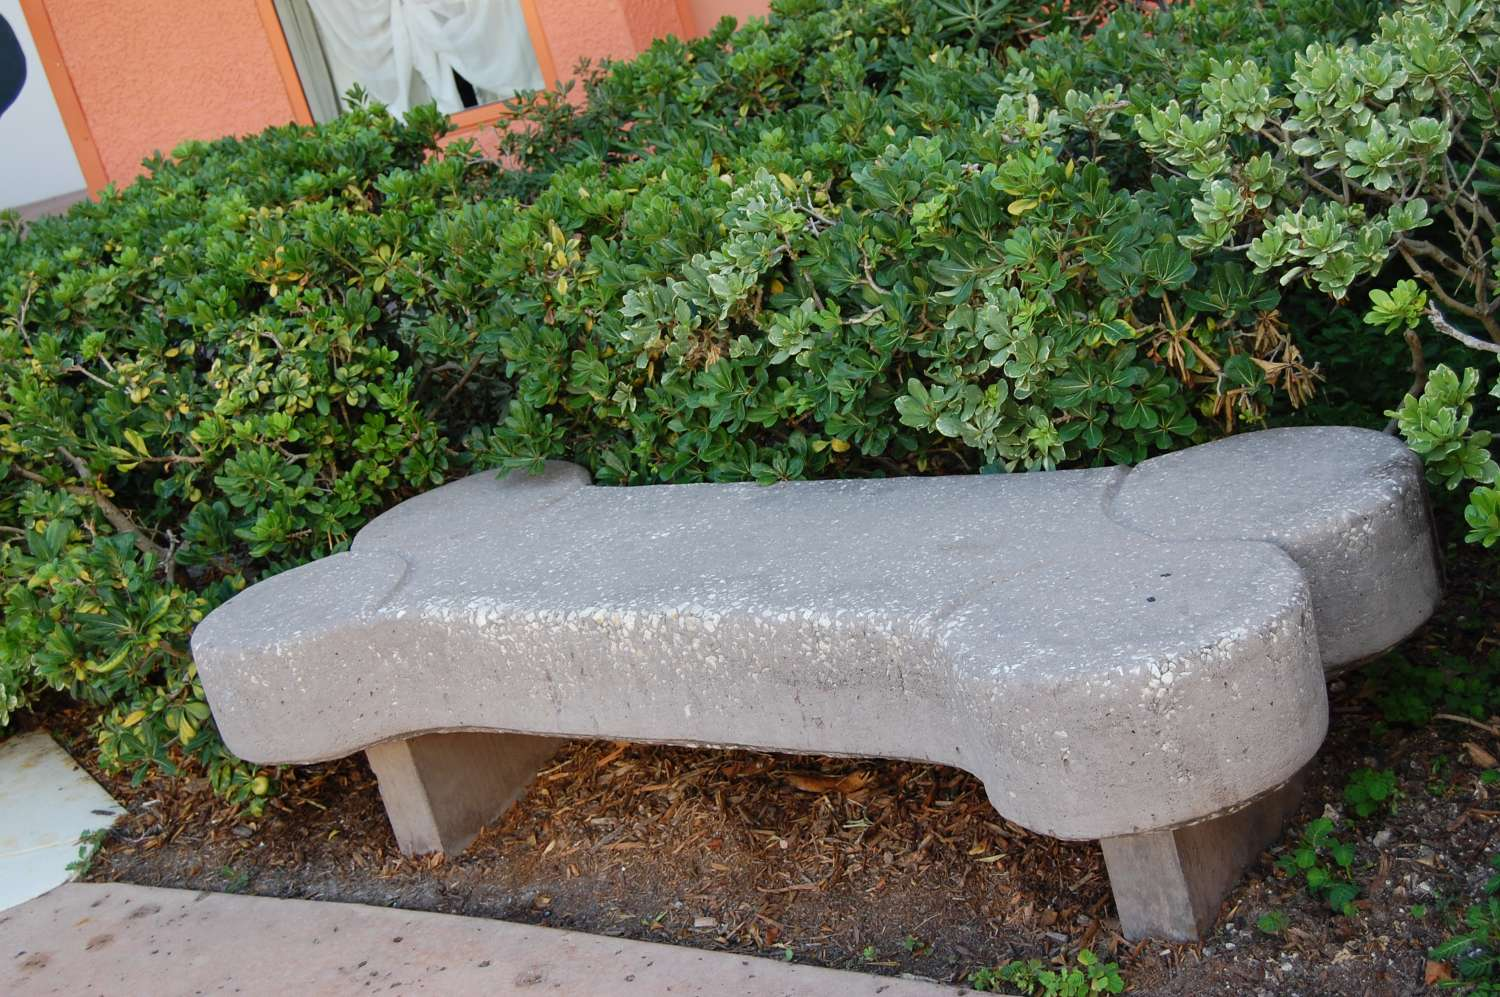 Bone park bench at the 101 Dalmatians buildings at Disney's All-Star Movies Resort